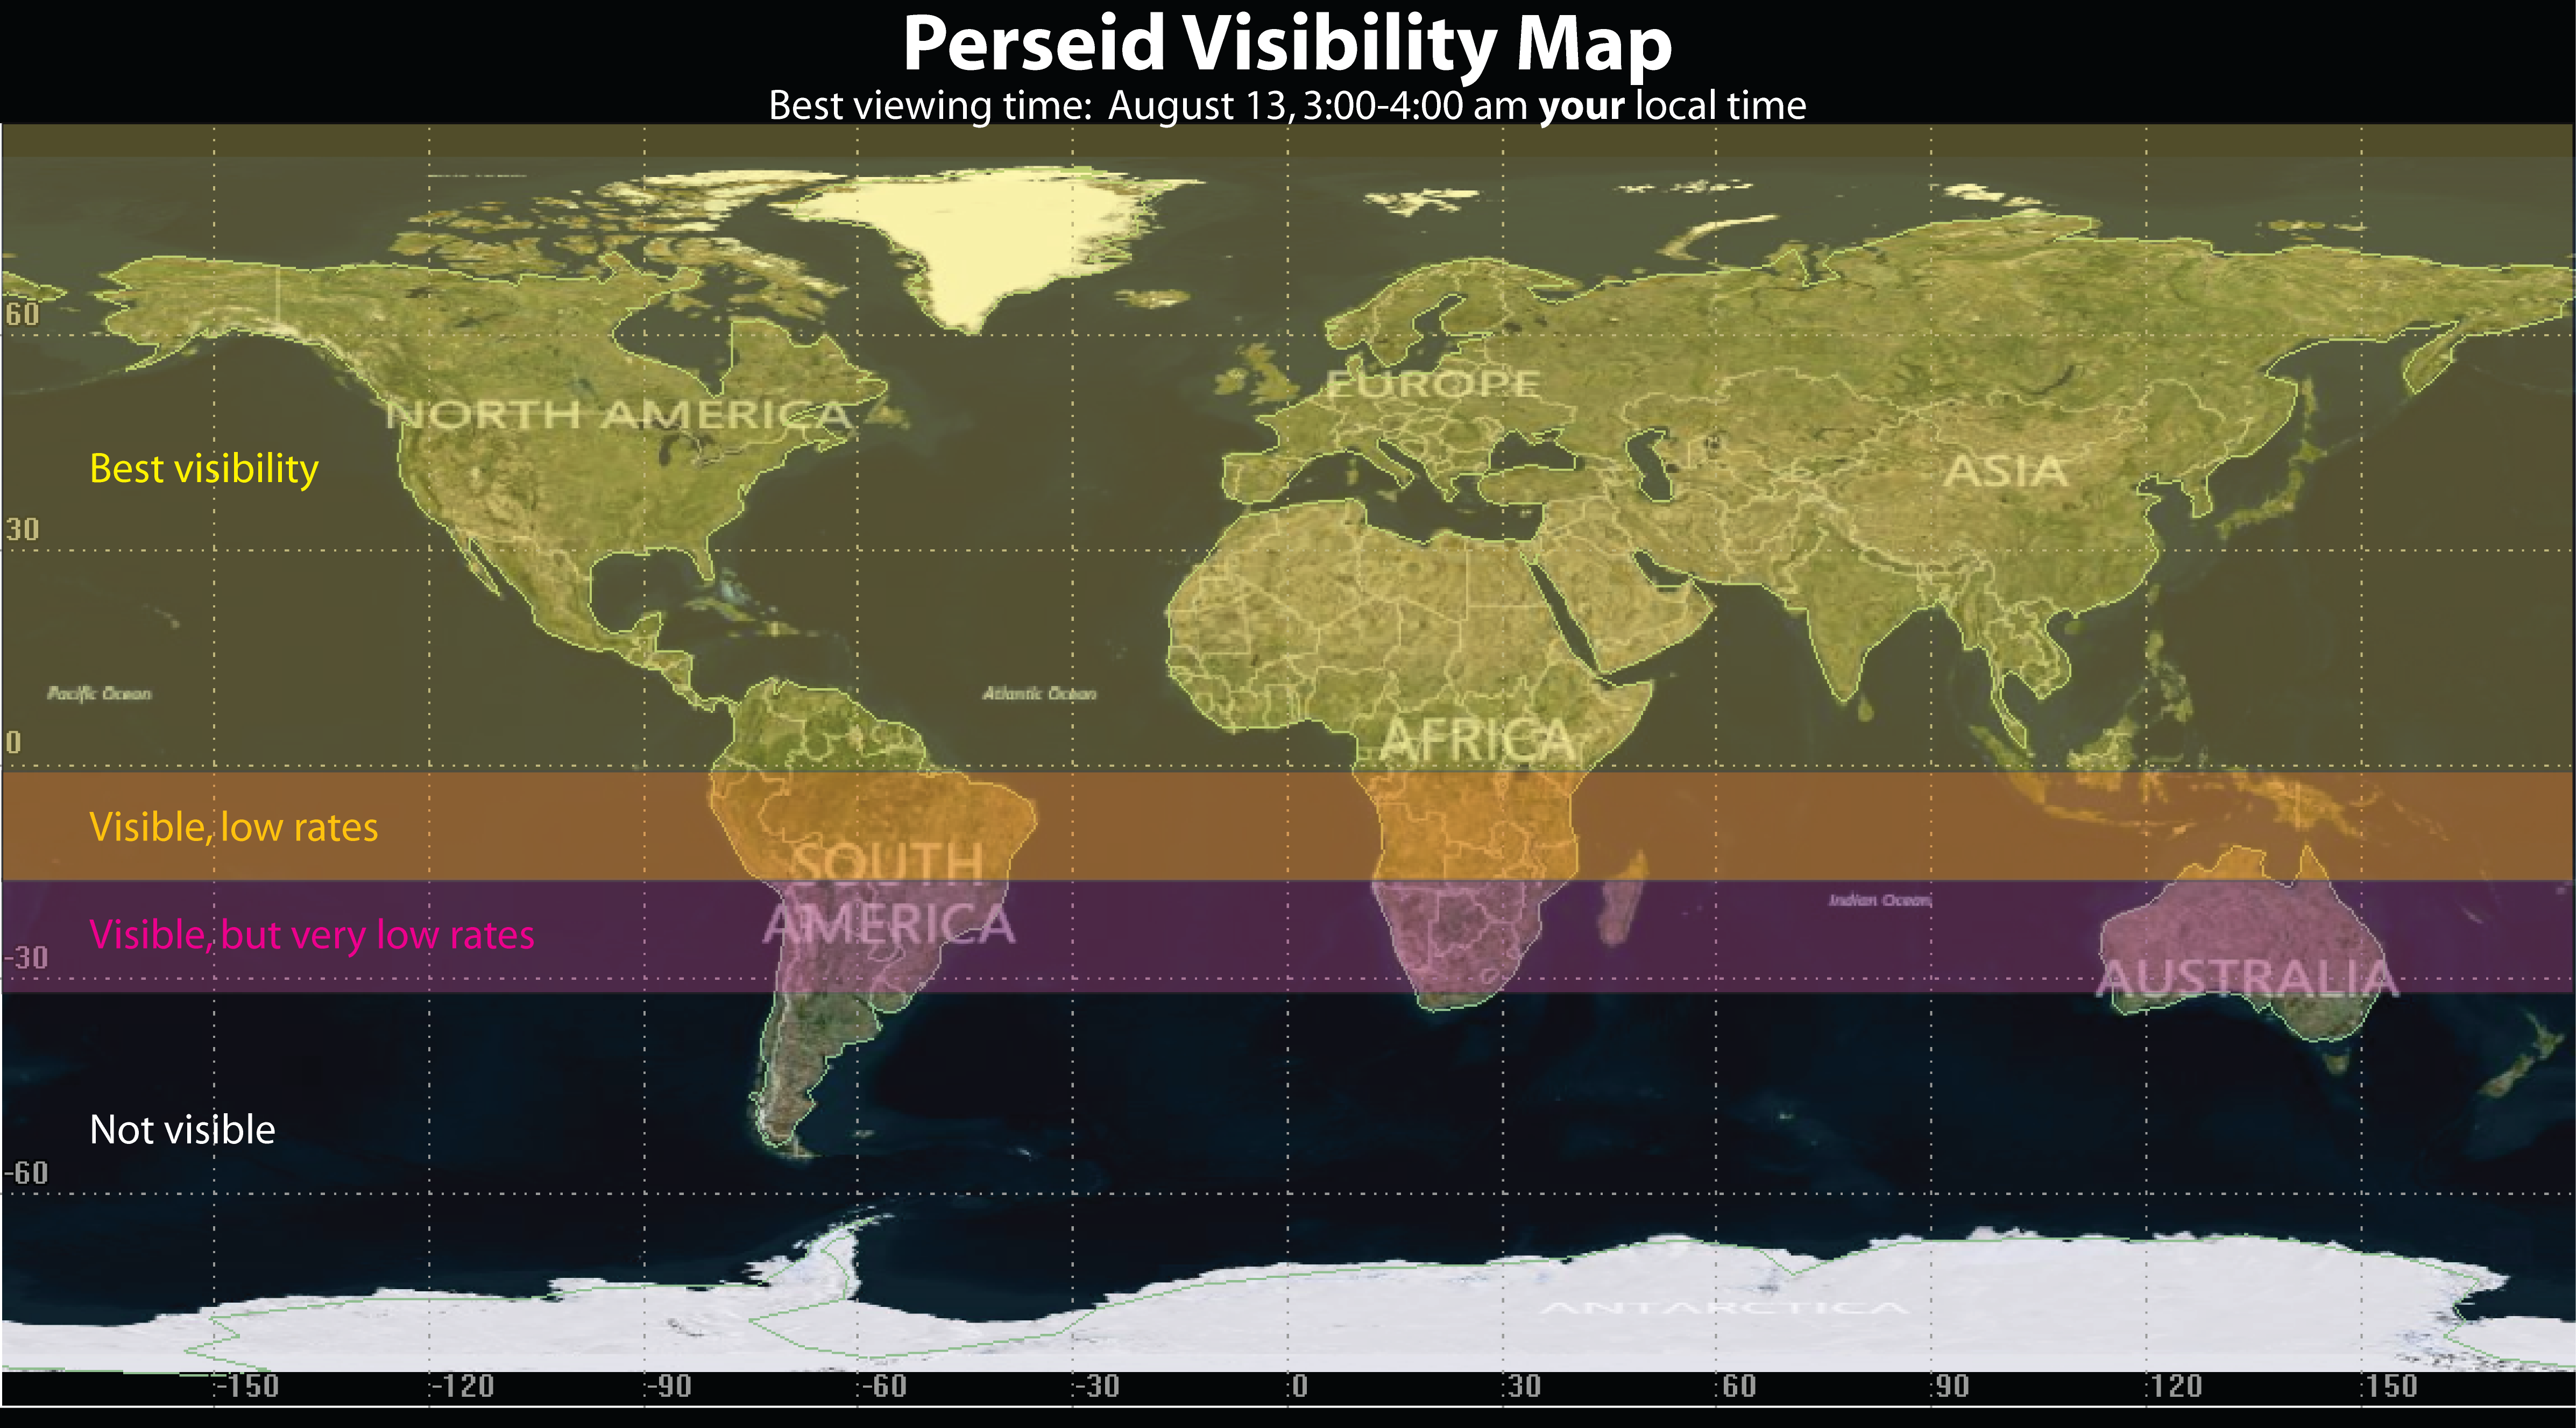 Perseid Meteor Shower 2014 Visibility Map